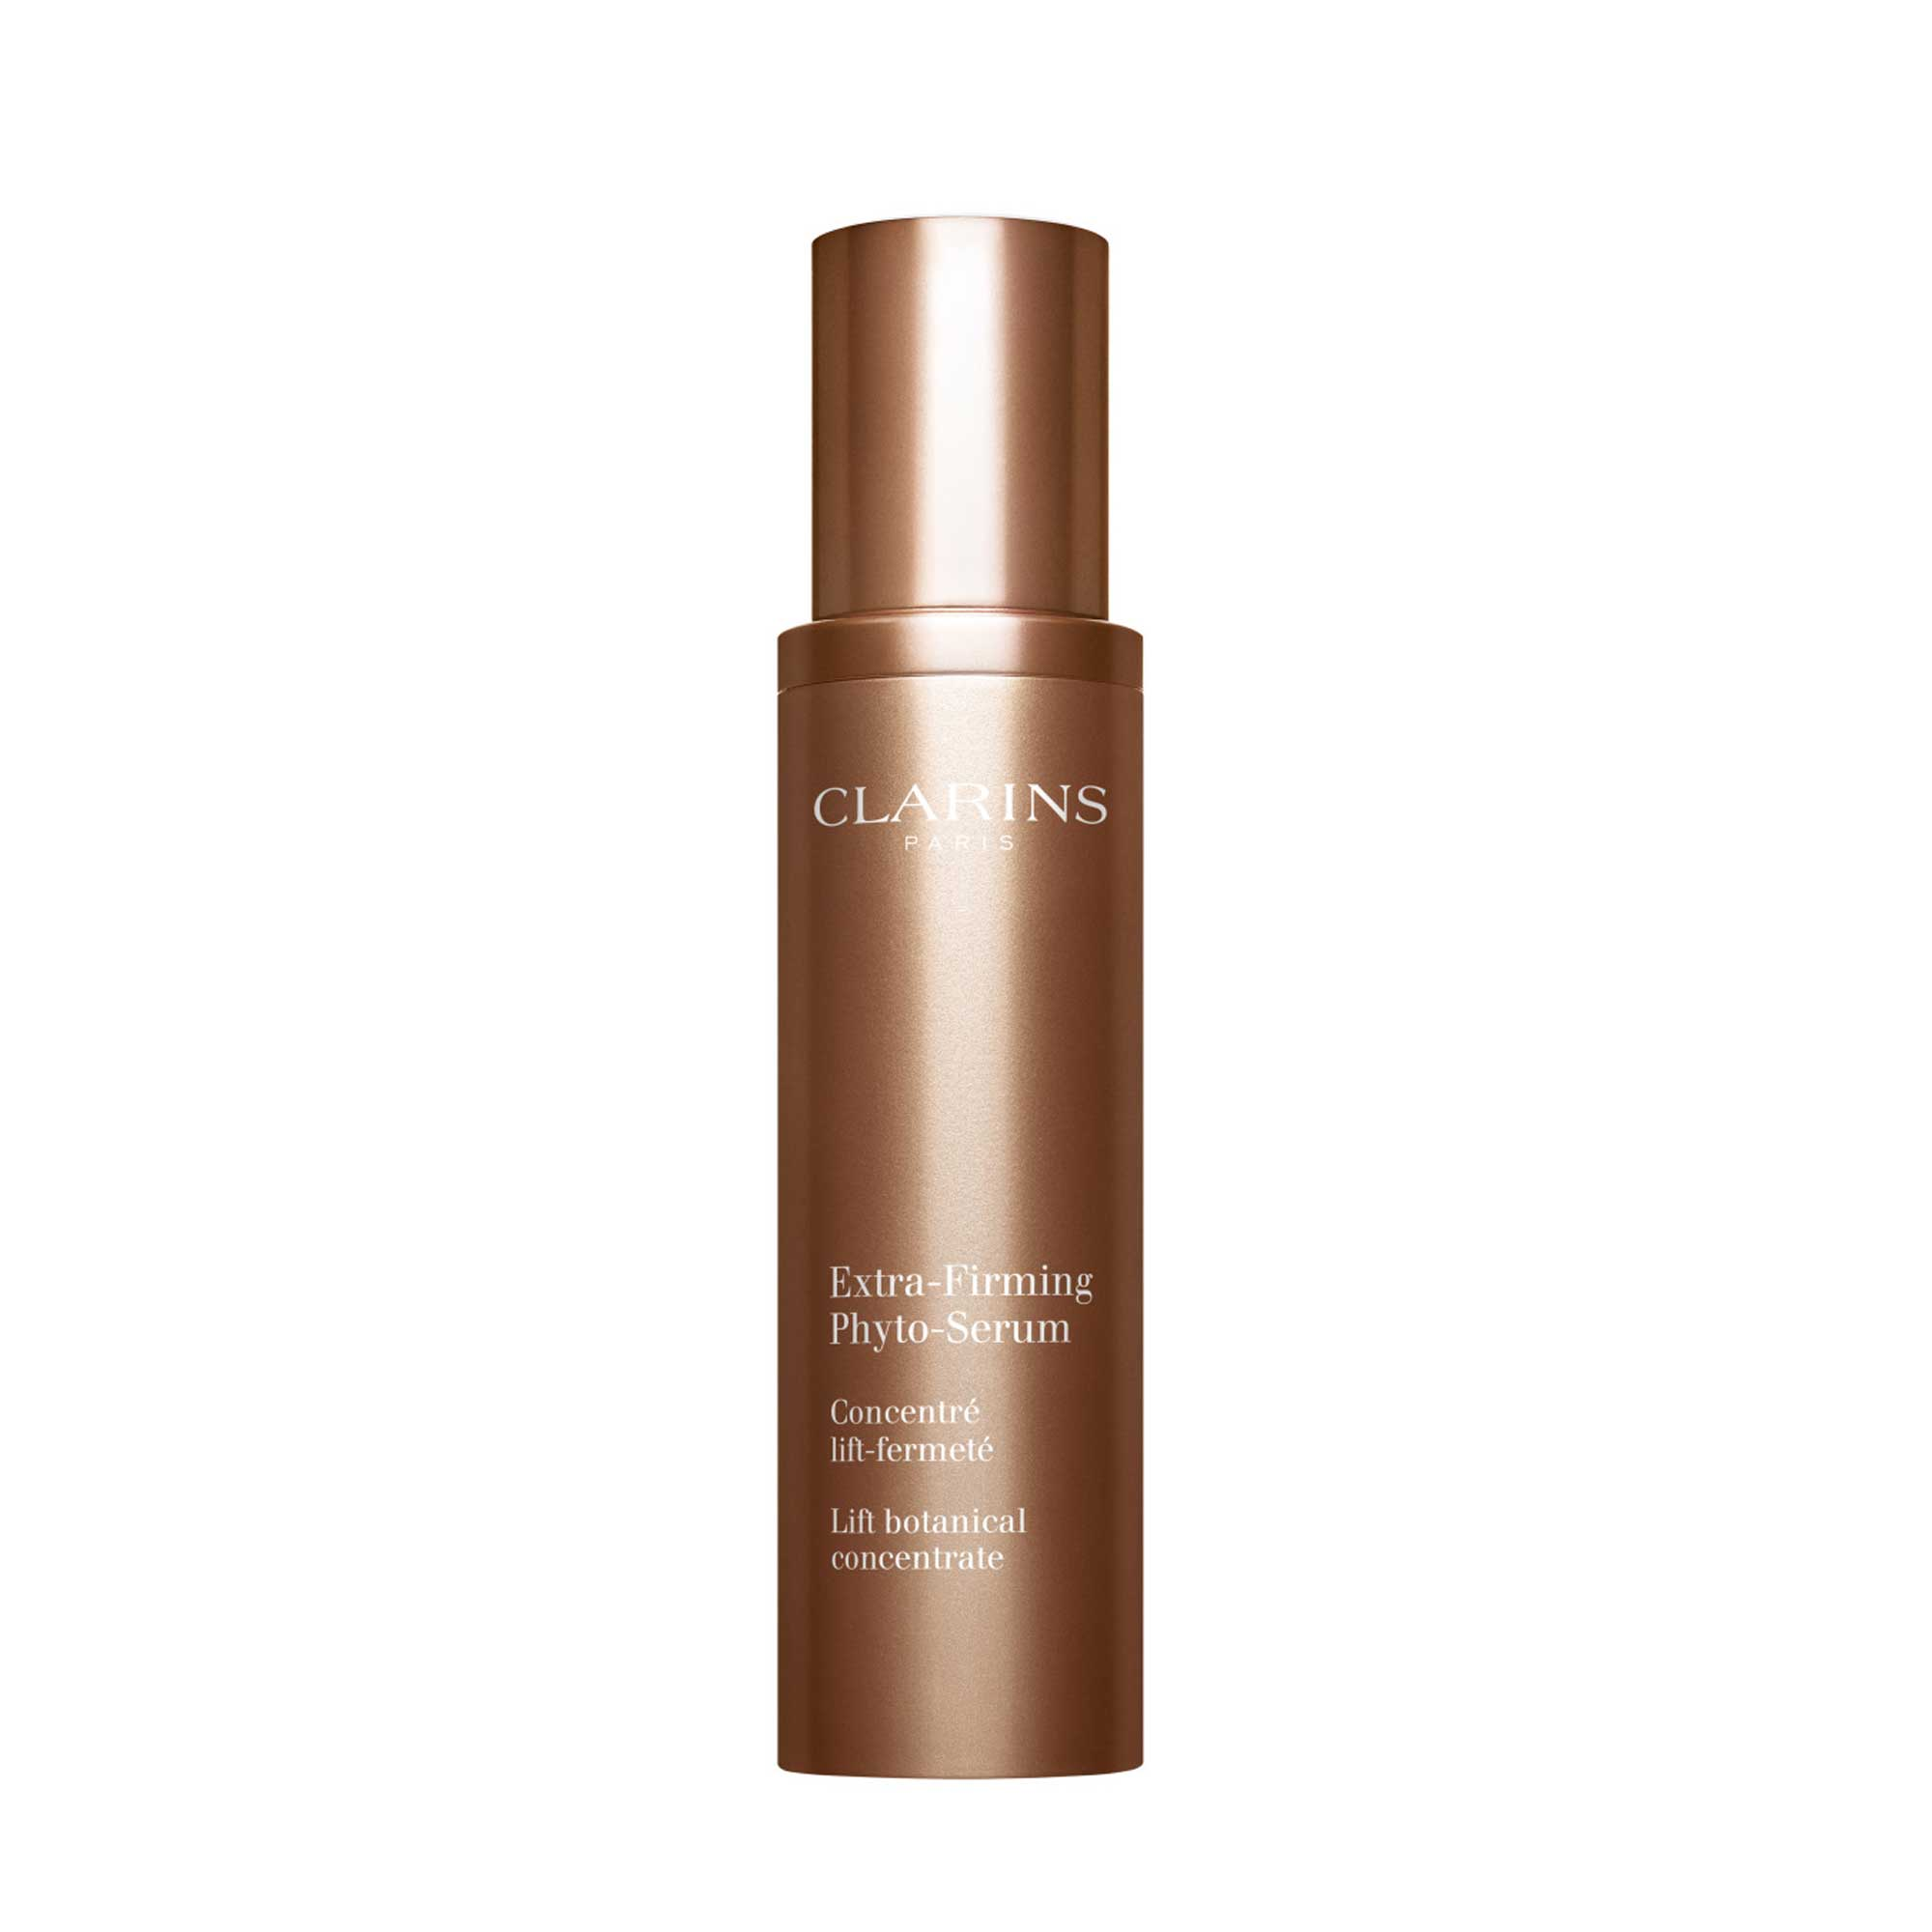 Extra-firming Fito-siero - Clarins